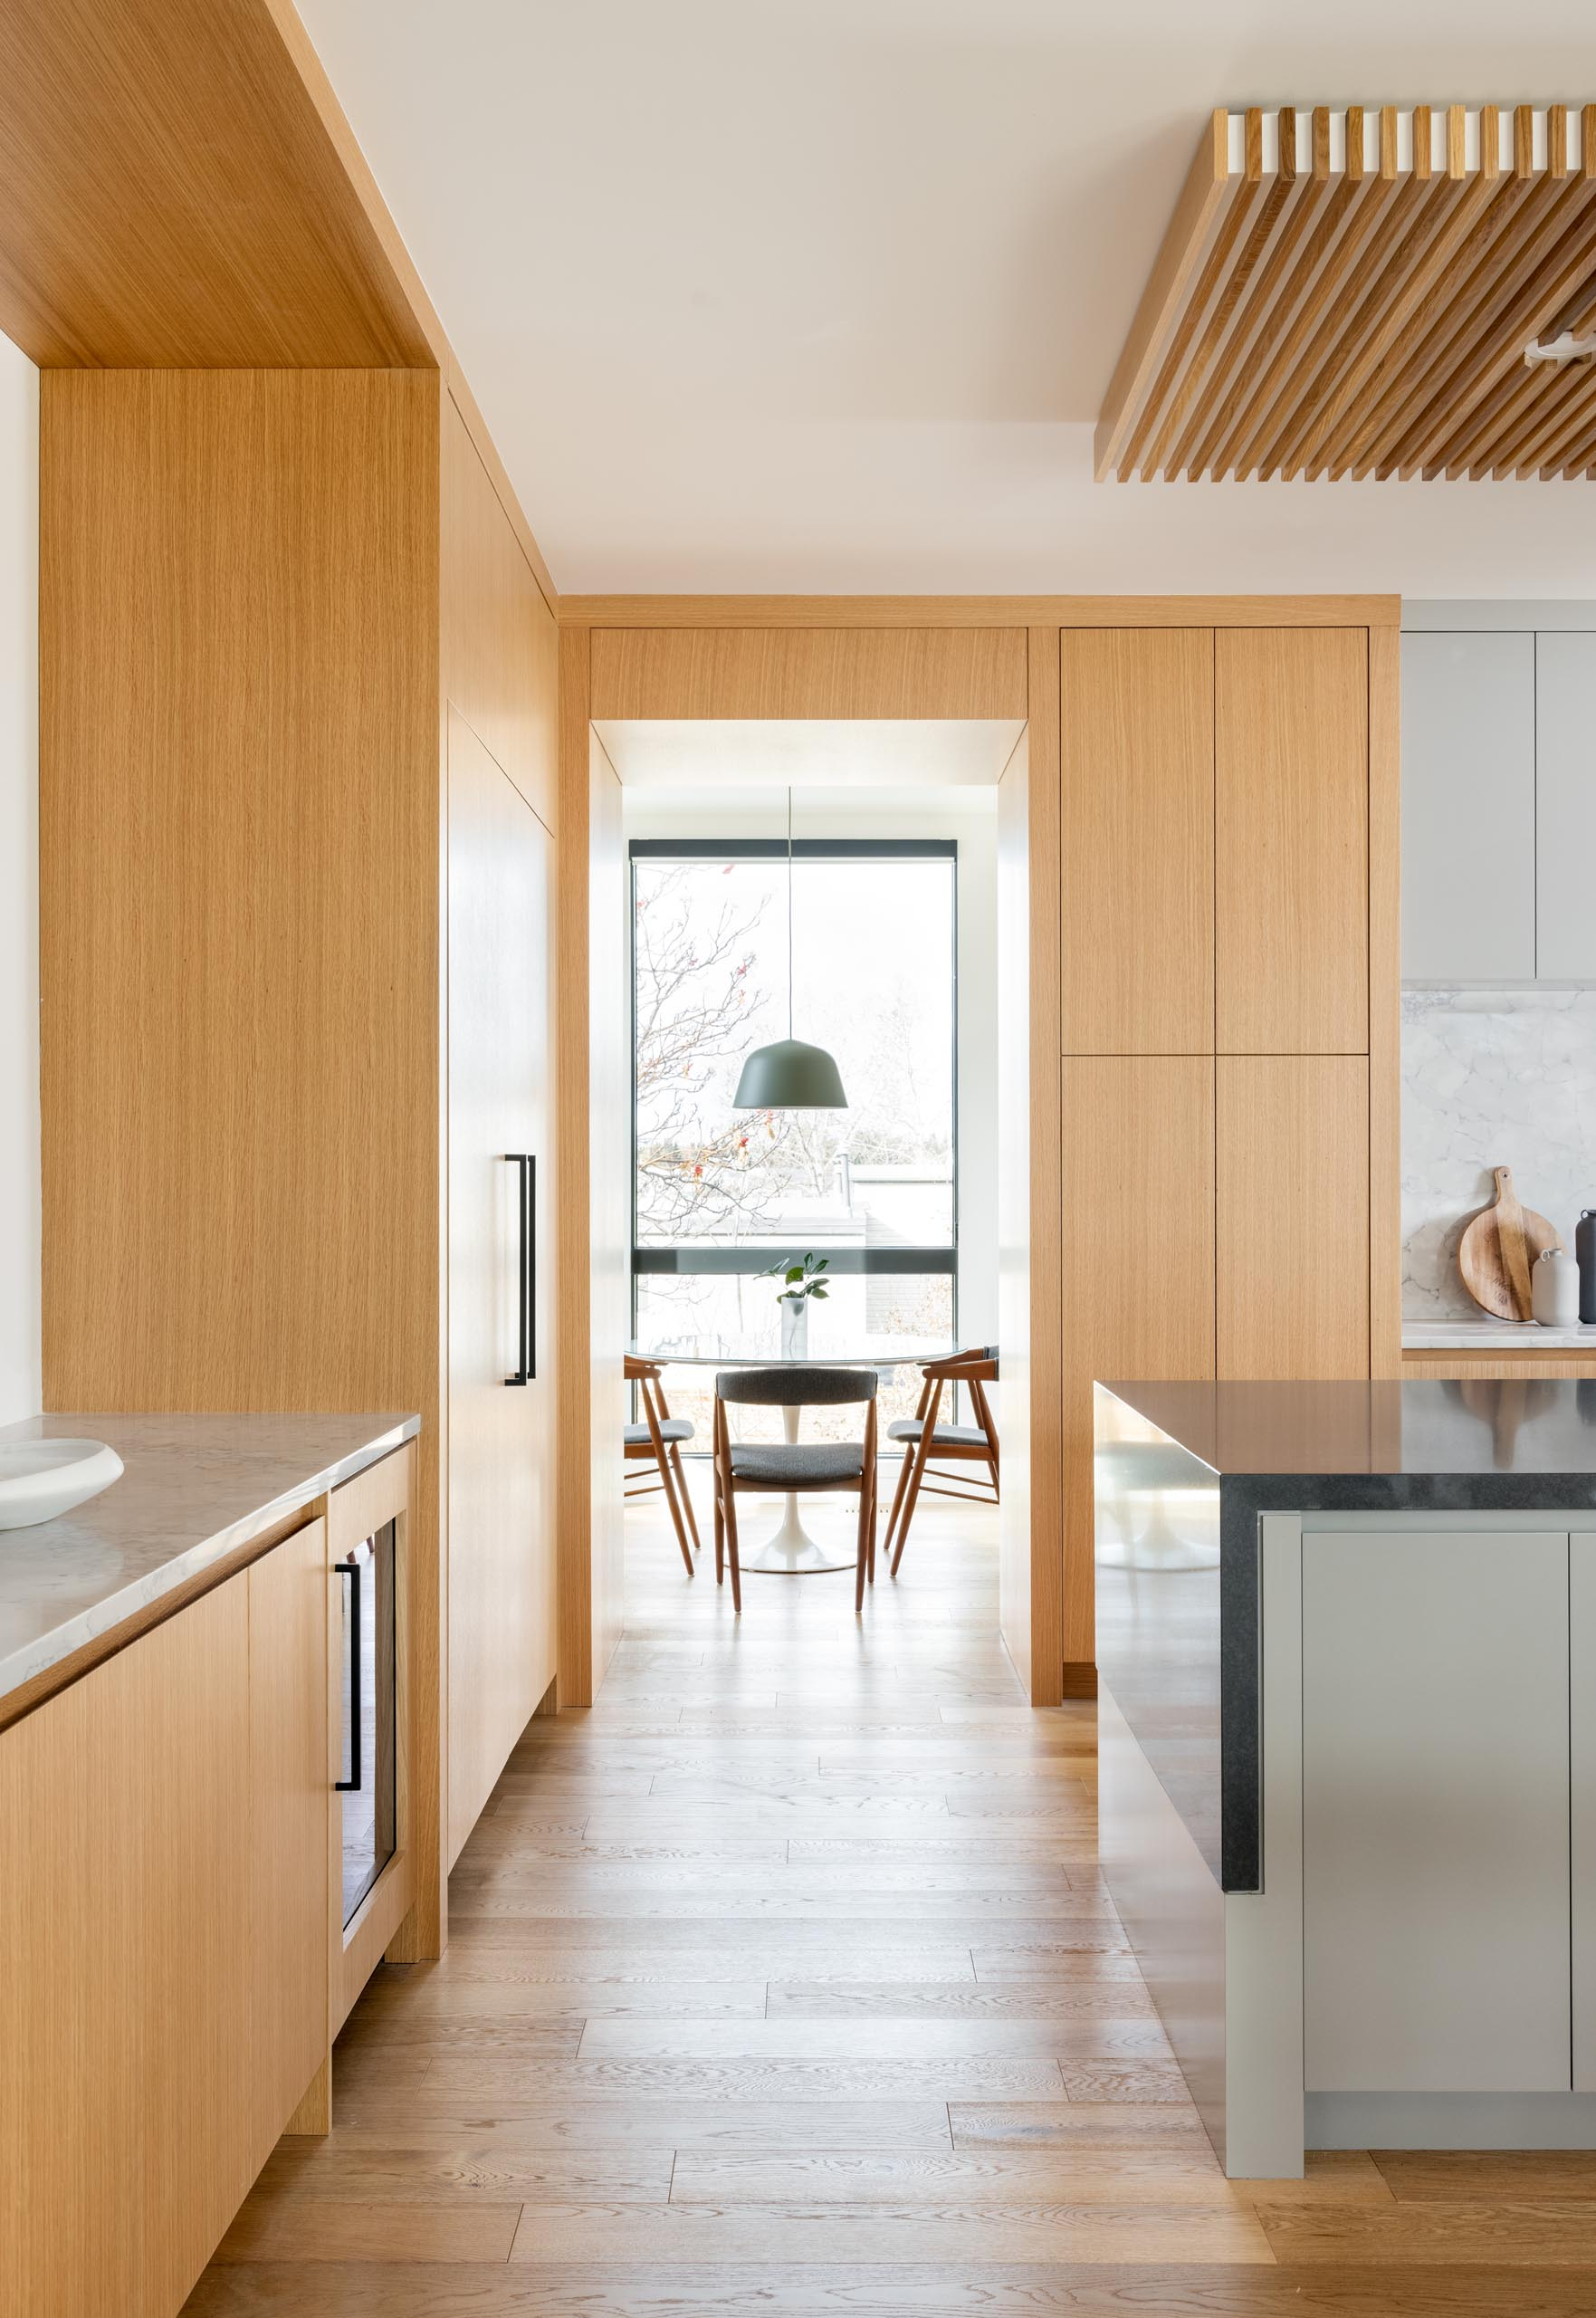 A small breakfast area is located off to the side of this modern kitchen.